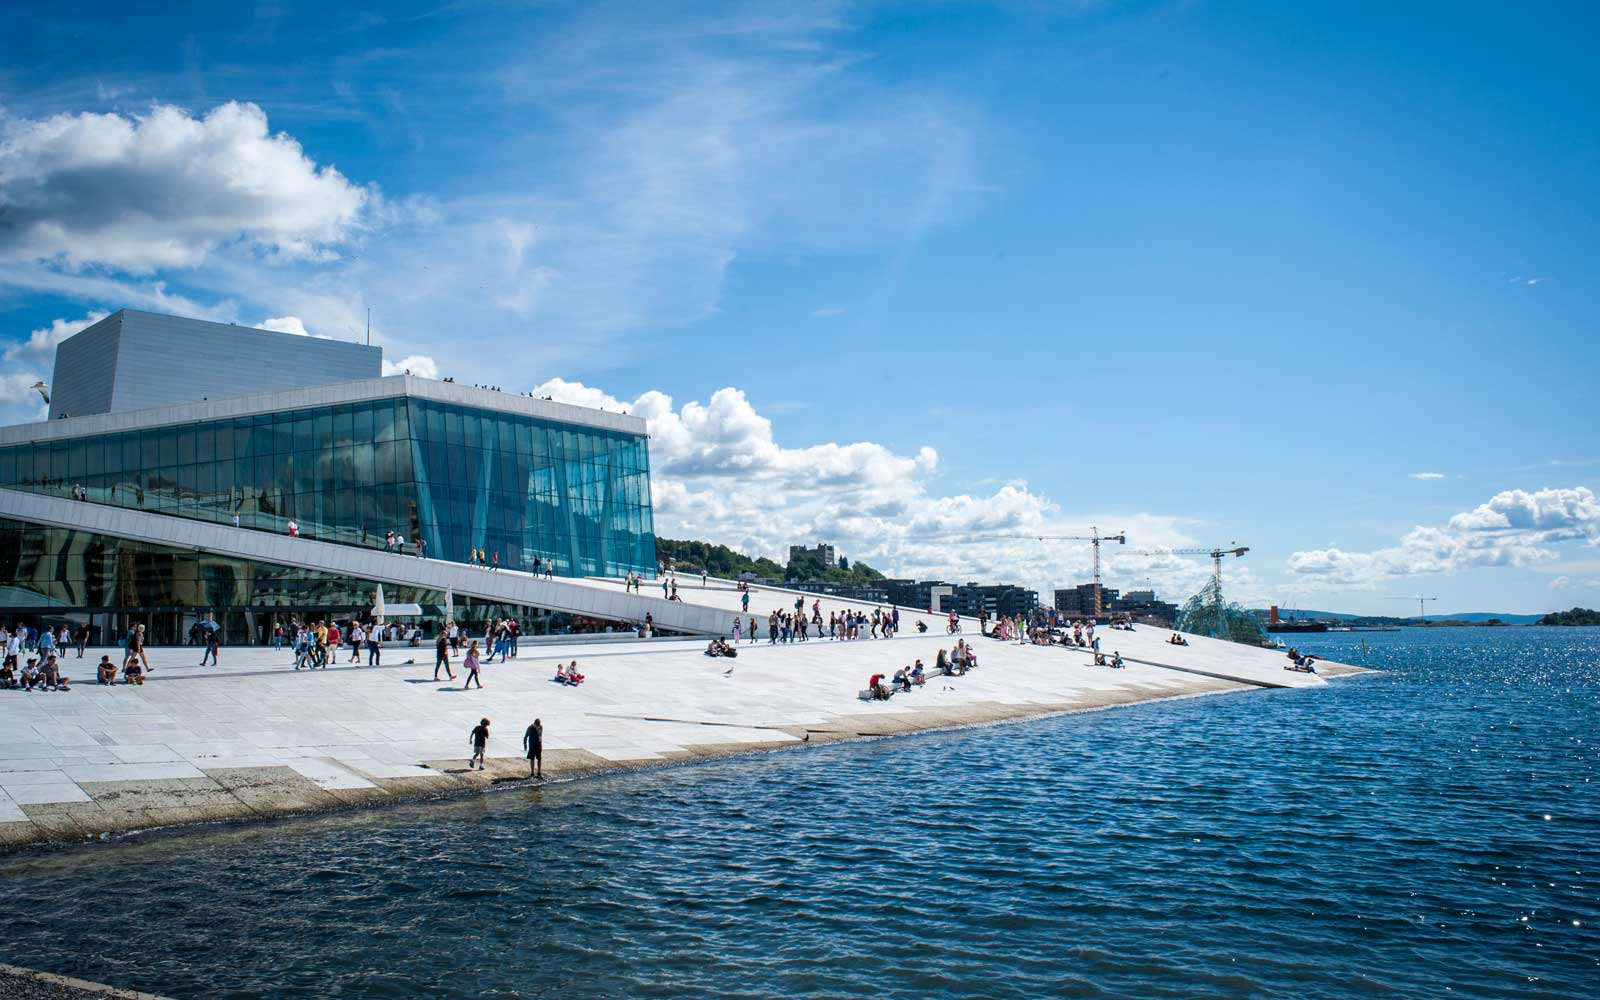 Things to See and Do on Oslo's Waterfront